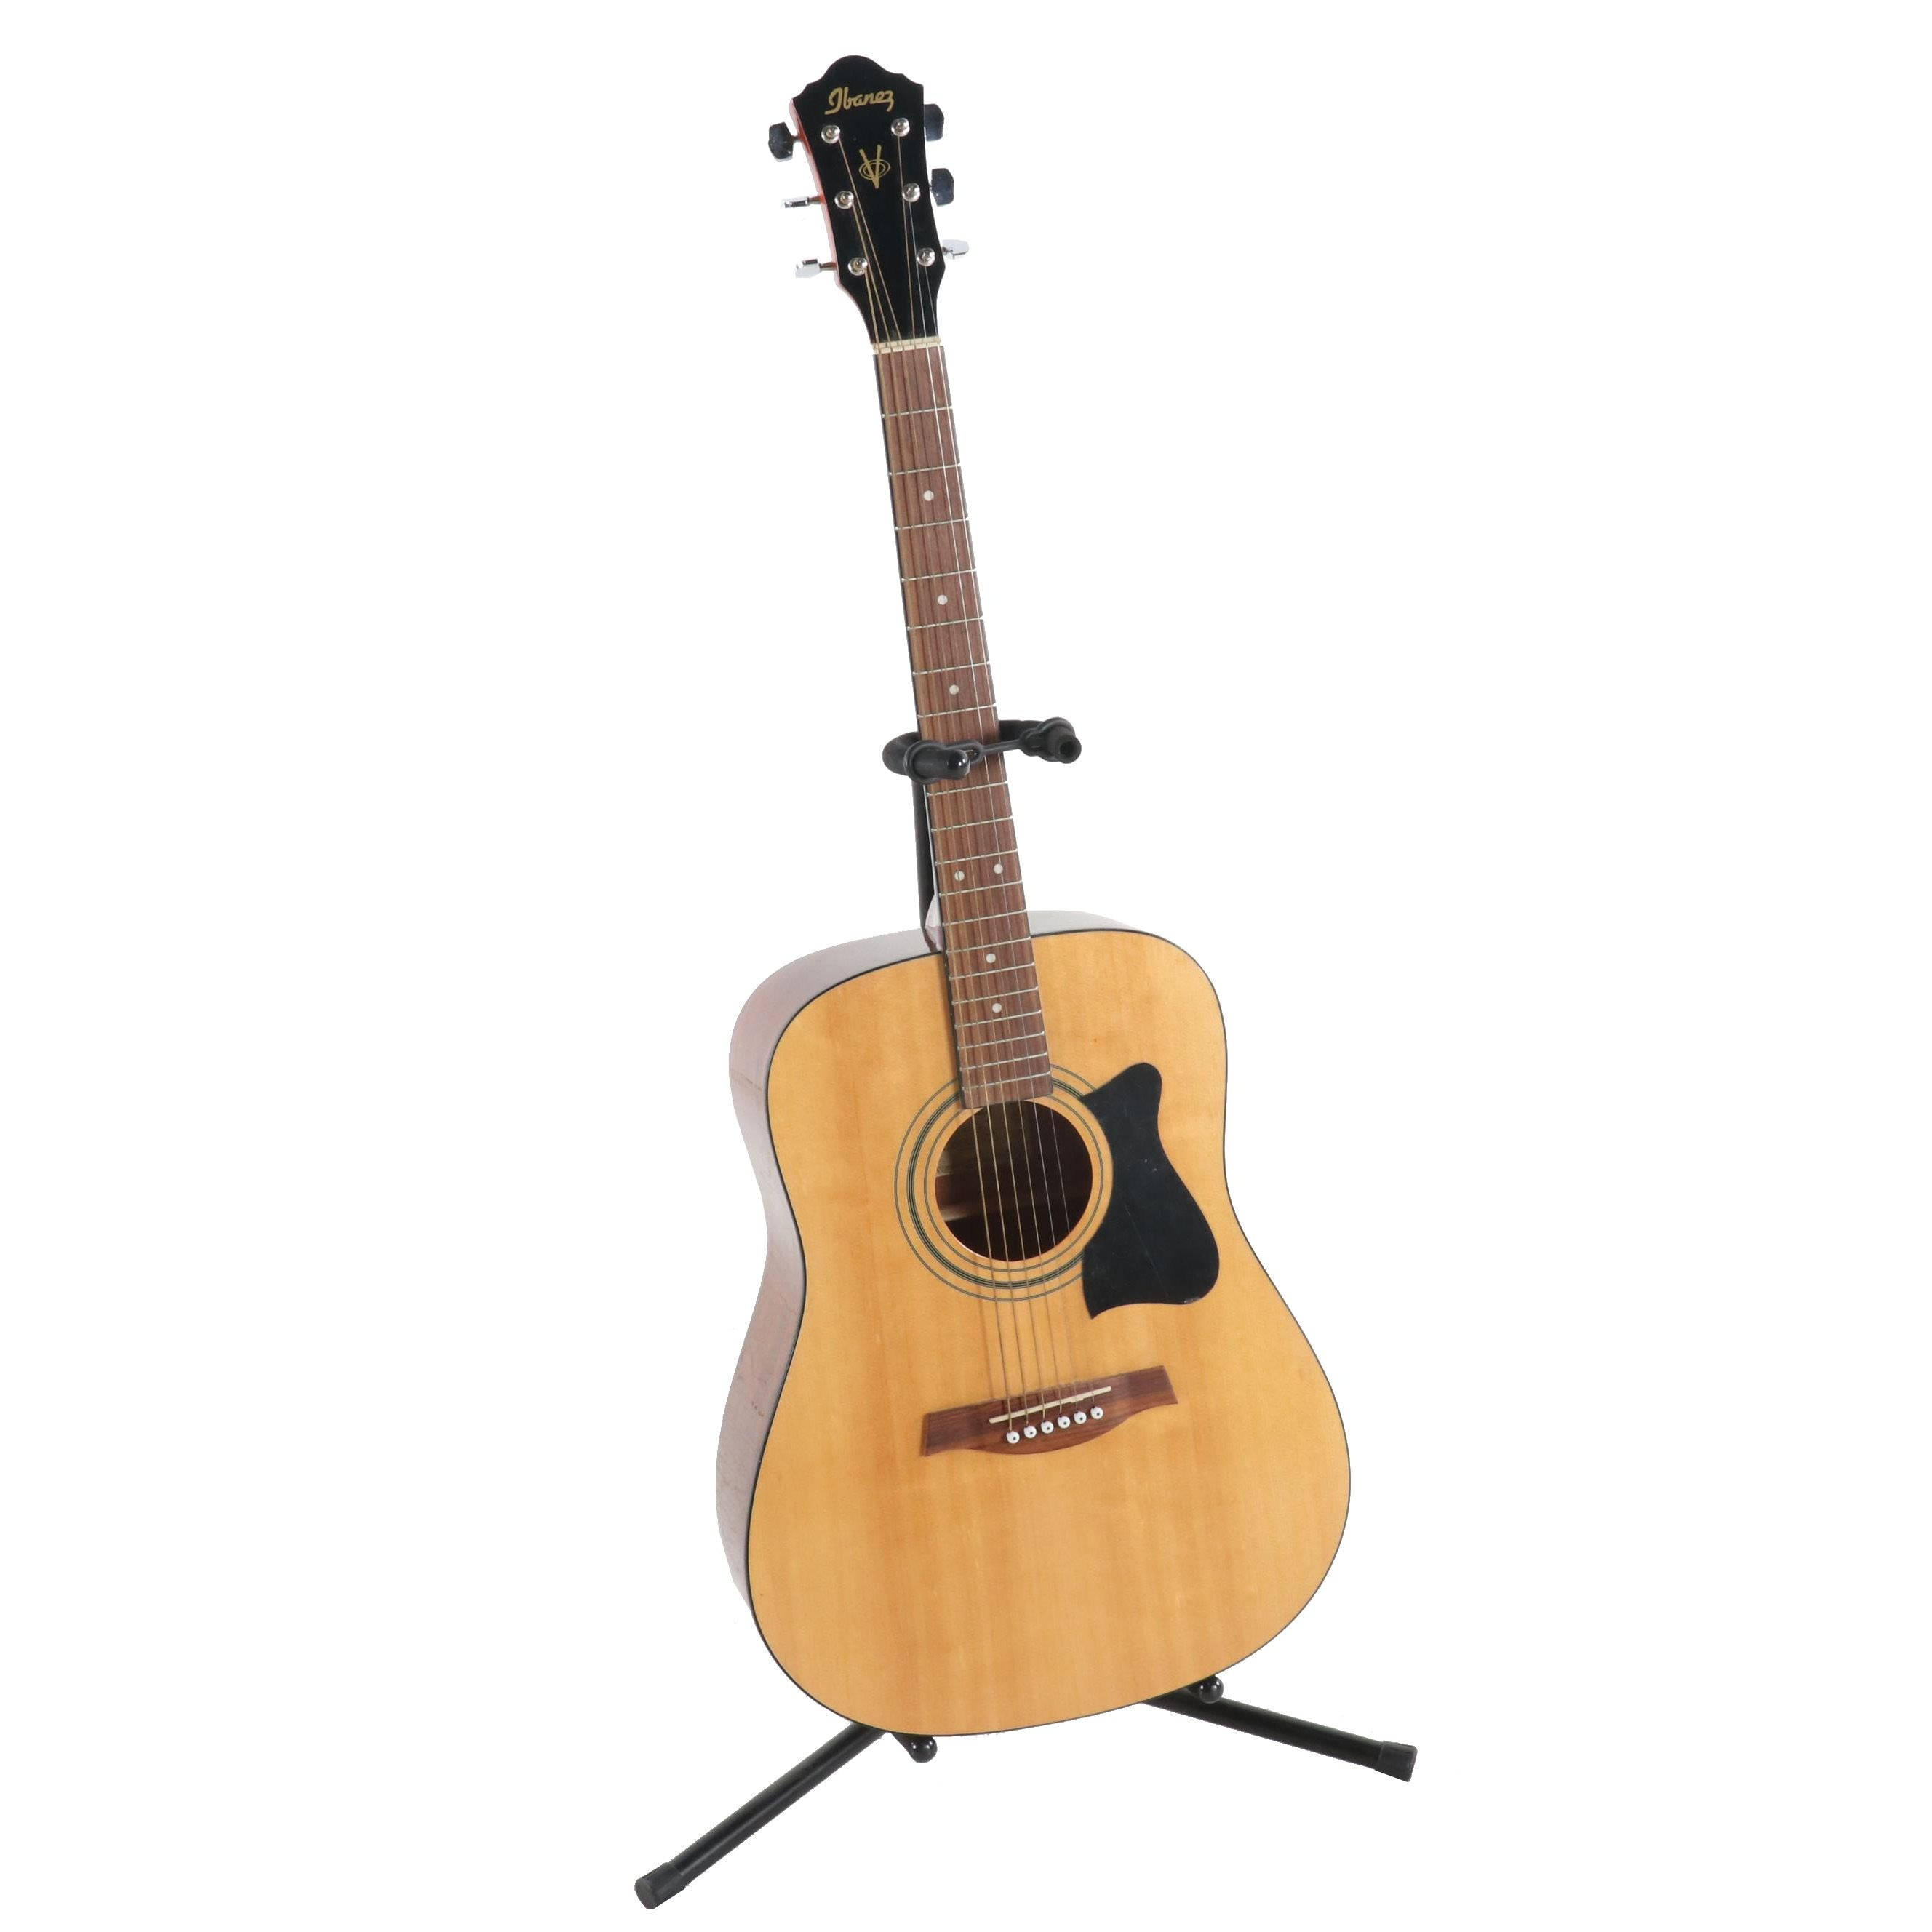 Ibanez Acoustic Guitar with Stand